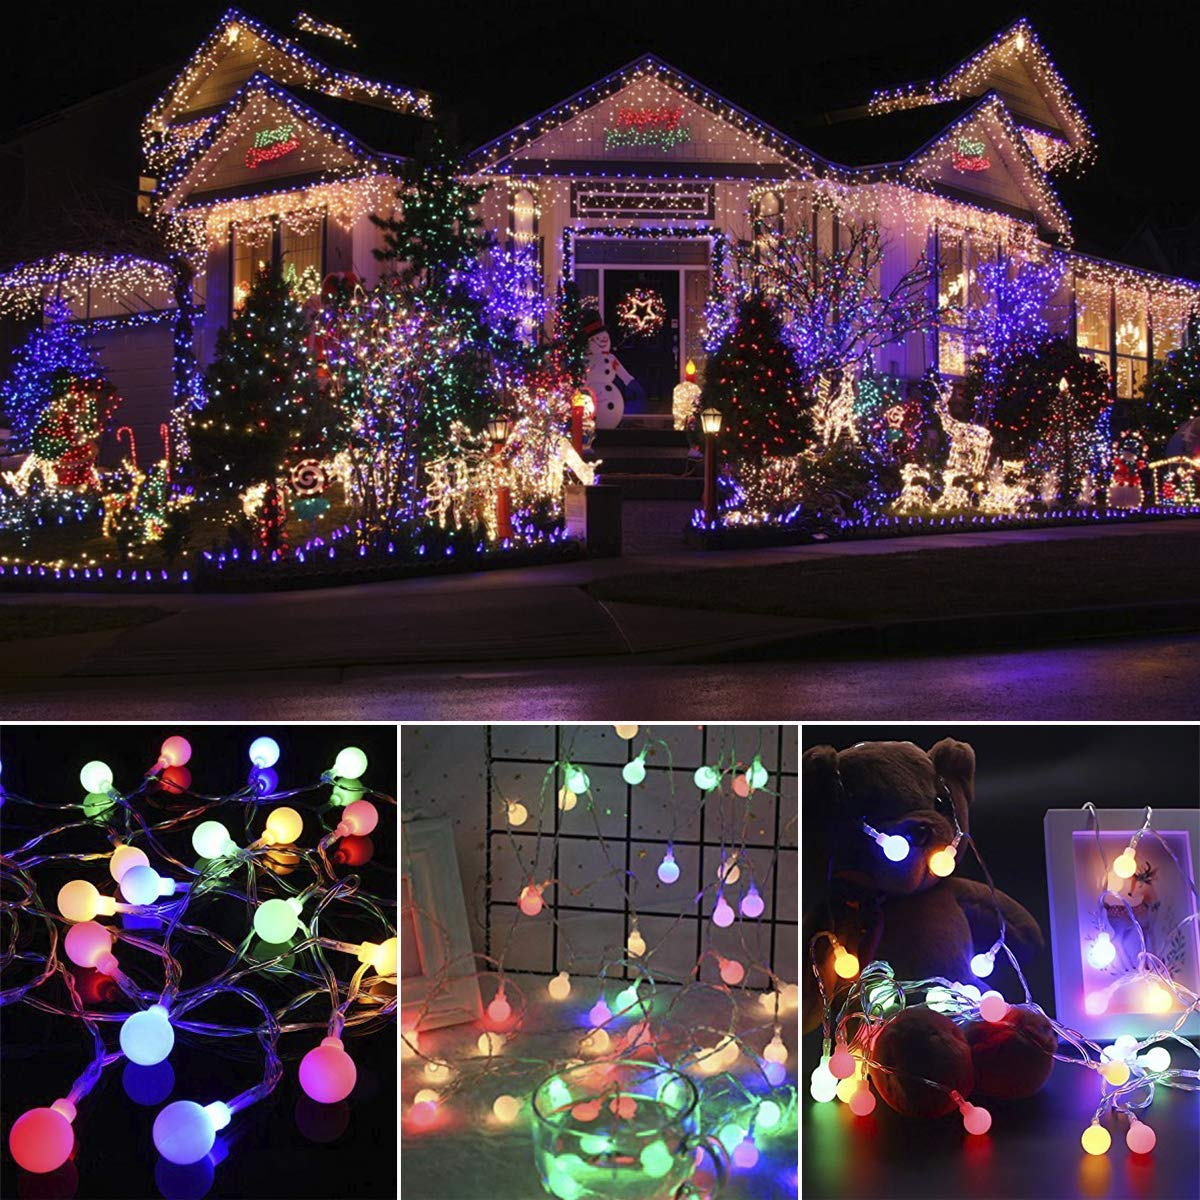 LED Globe String Lights EVXVE 100 Colored Mini Lights 8 Modes Waterproof Fairy Lights For Indoor & Outdoor Home Garden Patio Party Holiday Christmas Decoration (44Ft )